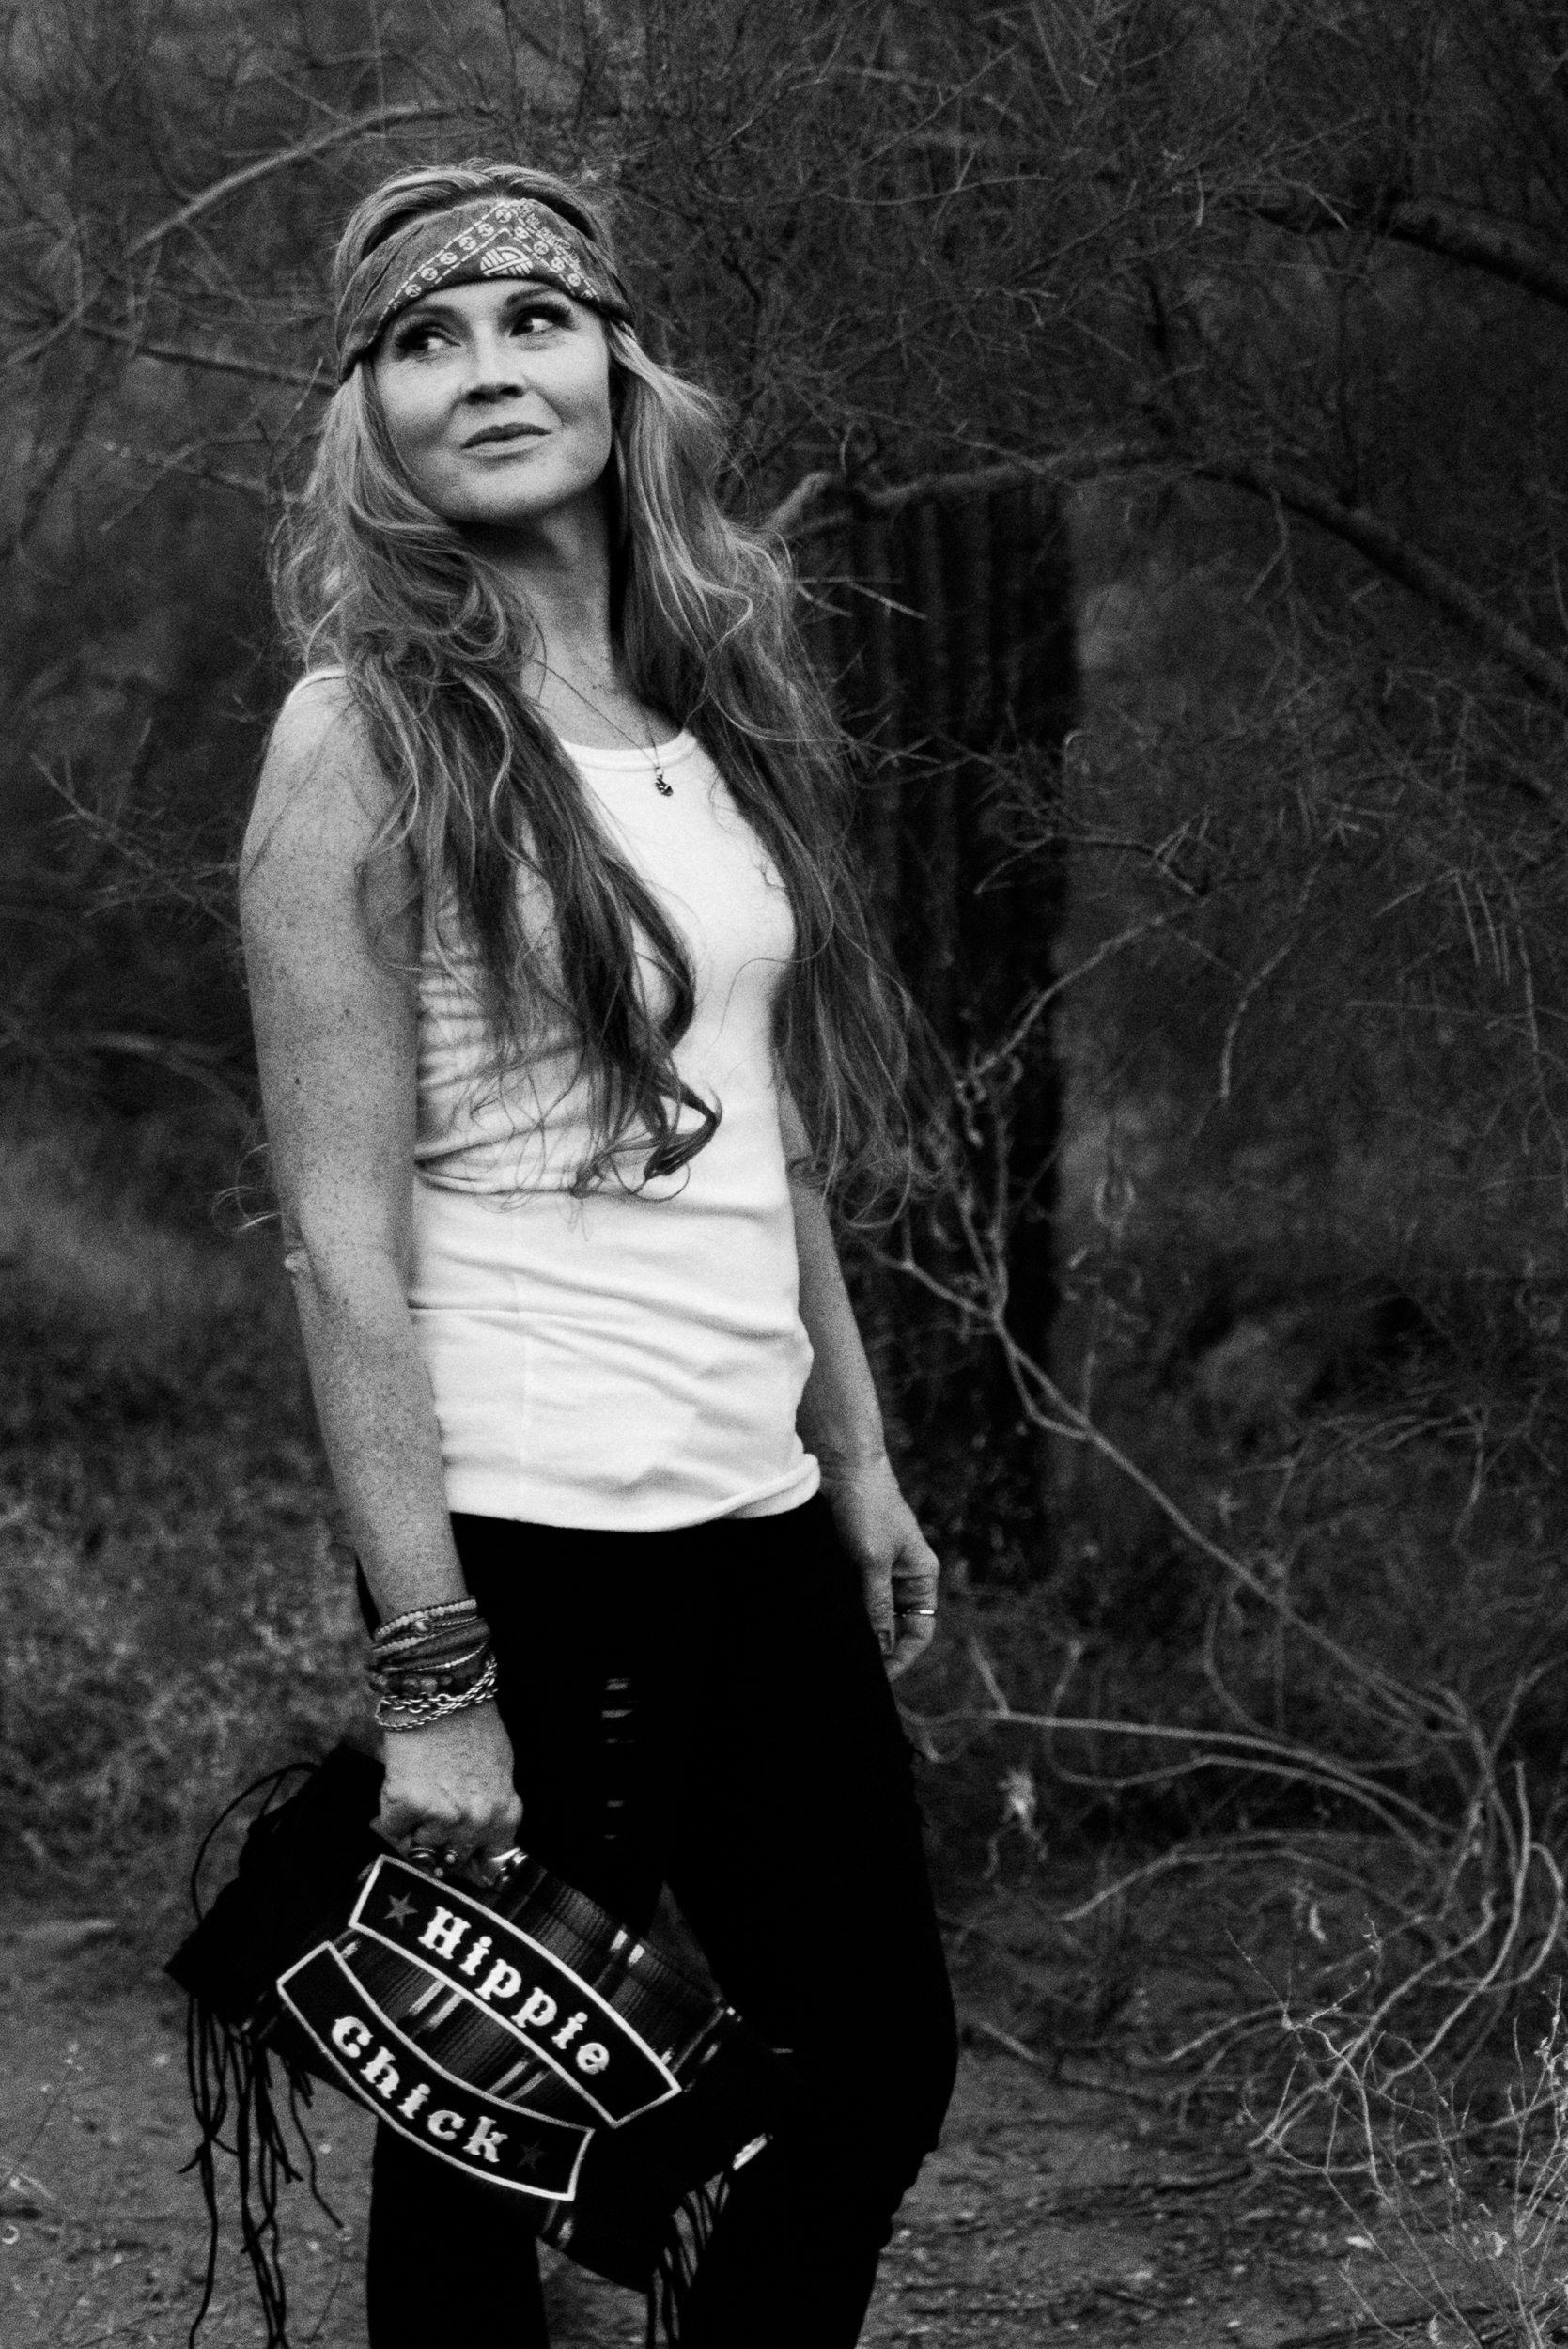 Beautiful Cortney owner of Hippie Momma Bags showing a black hippie chick bag in the Arizona desert a black and white photo